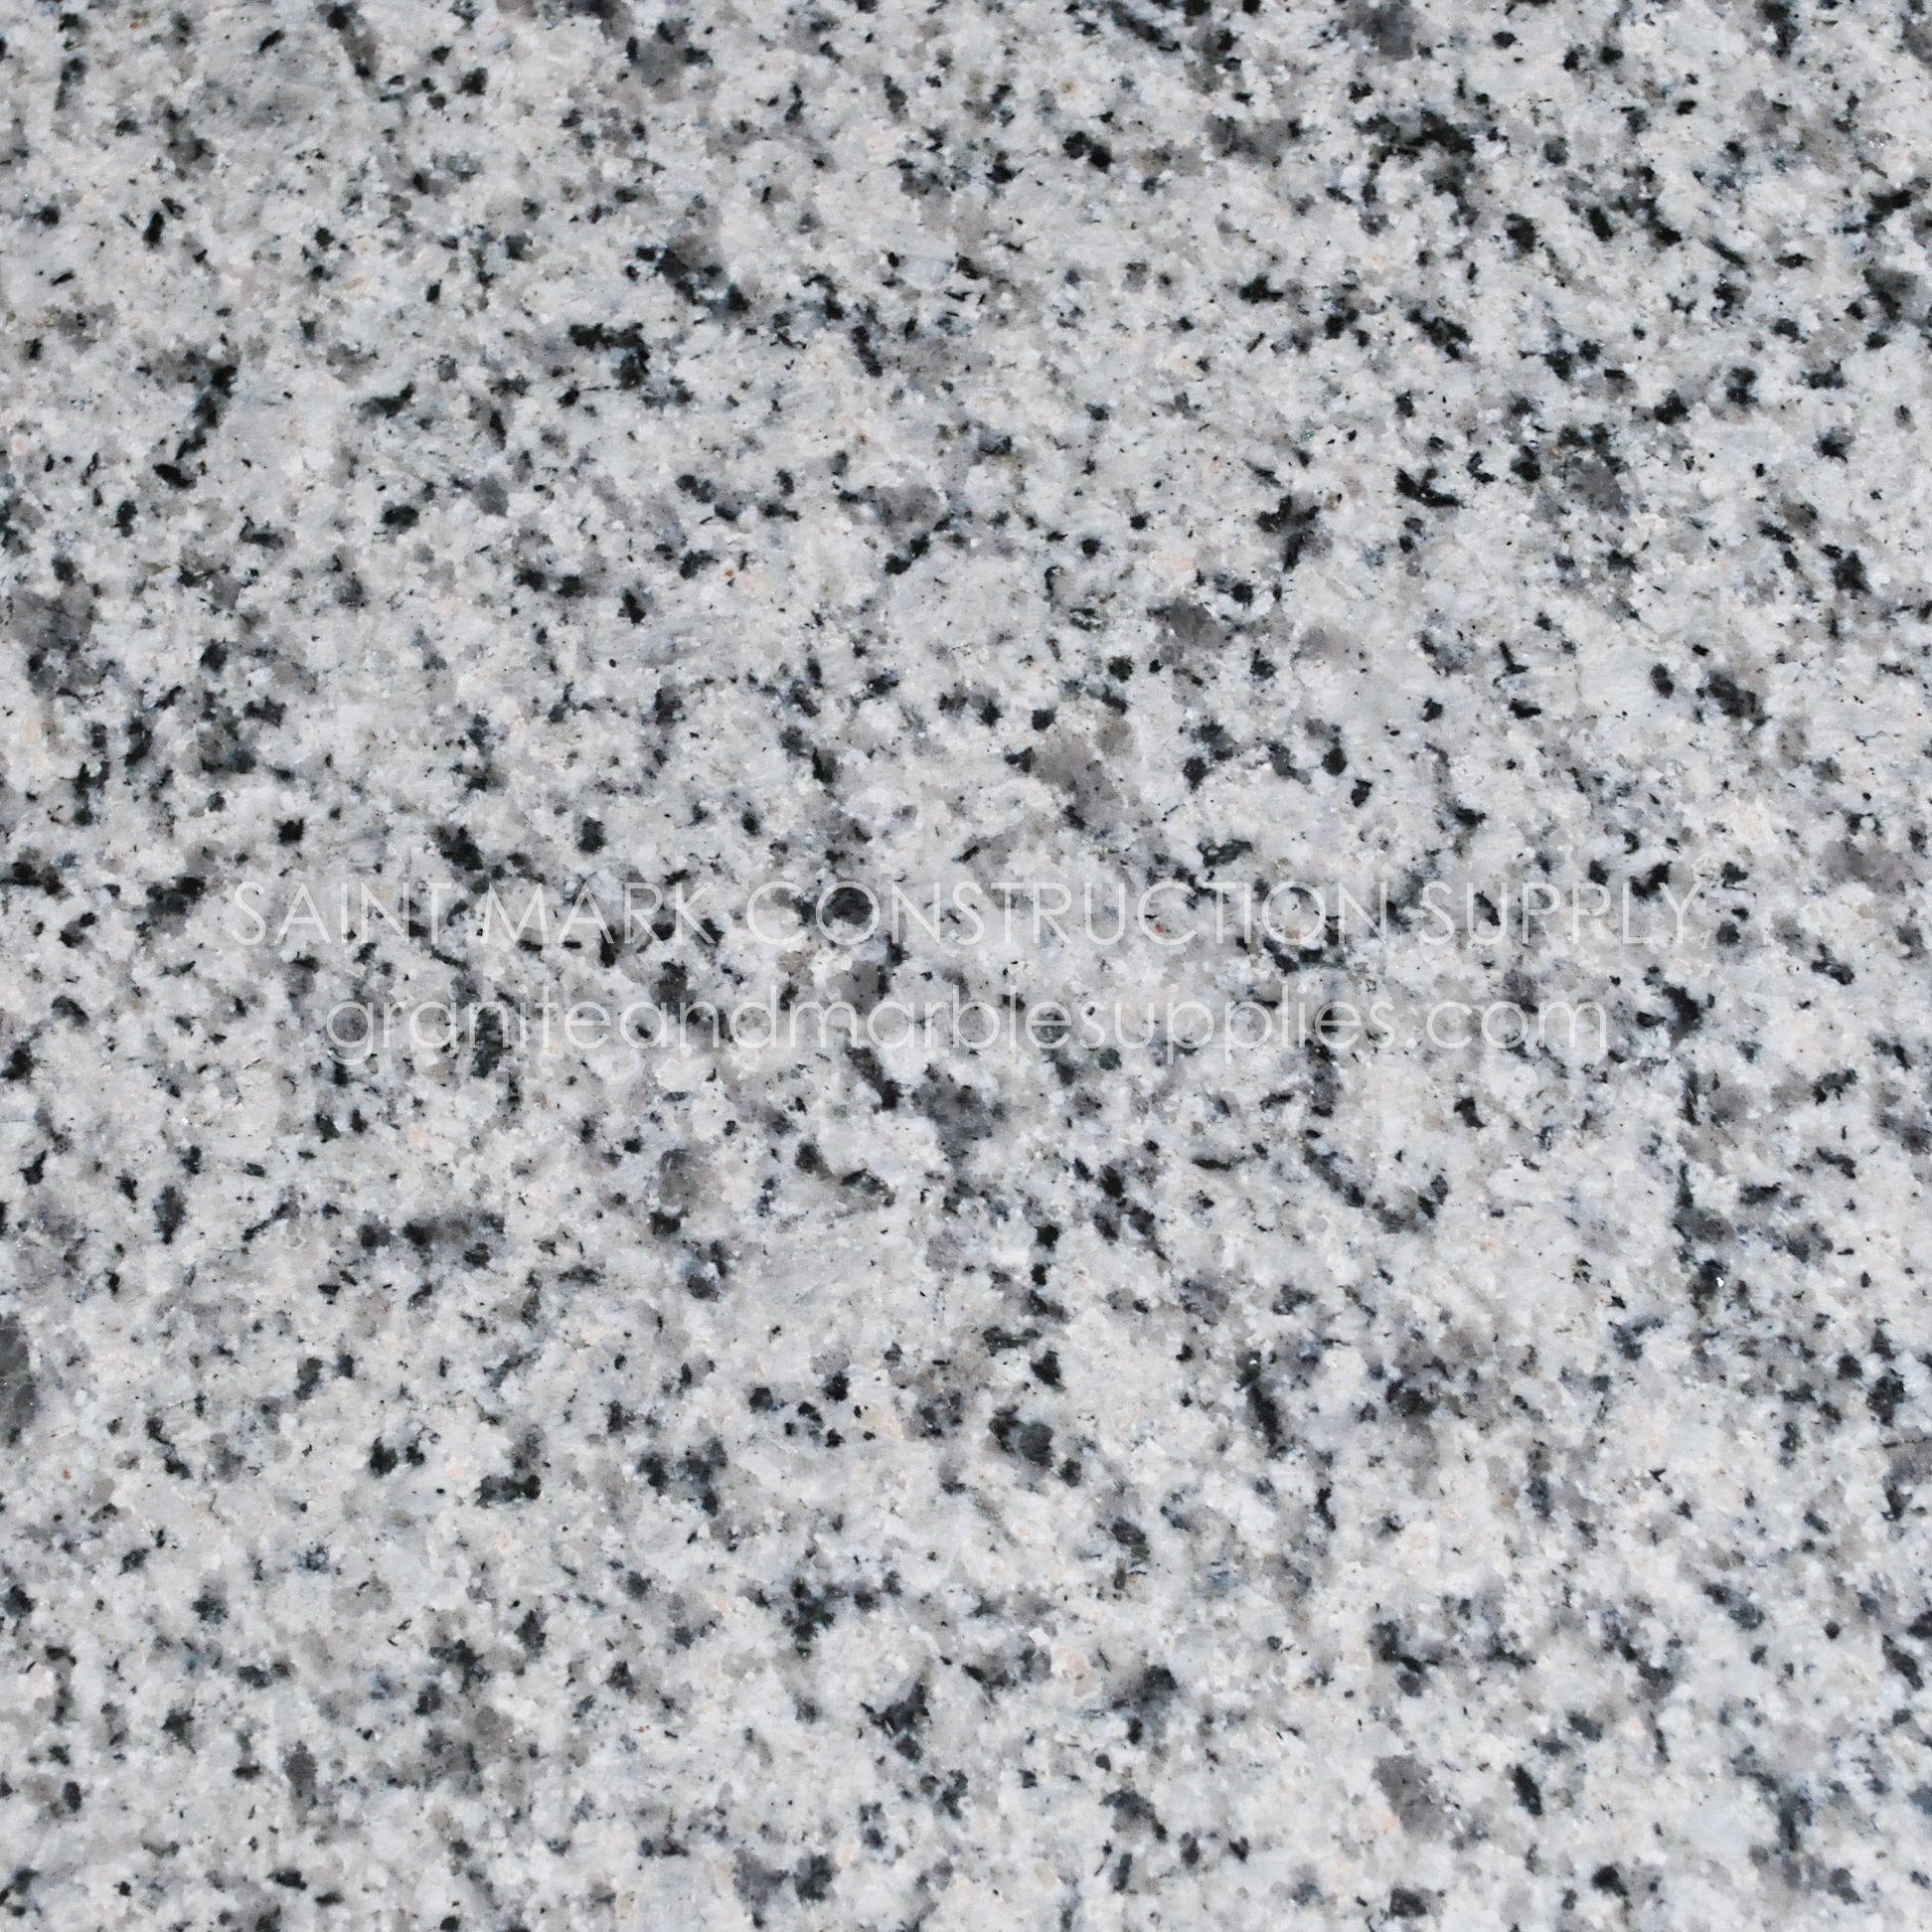 White Marble Granite : Granites marbles and other natural stones saint mark